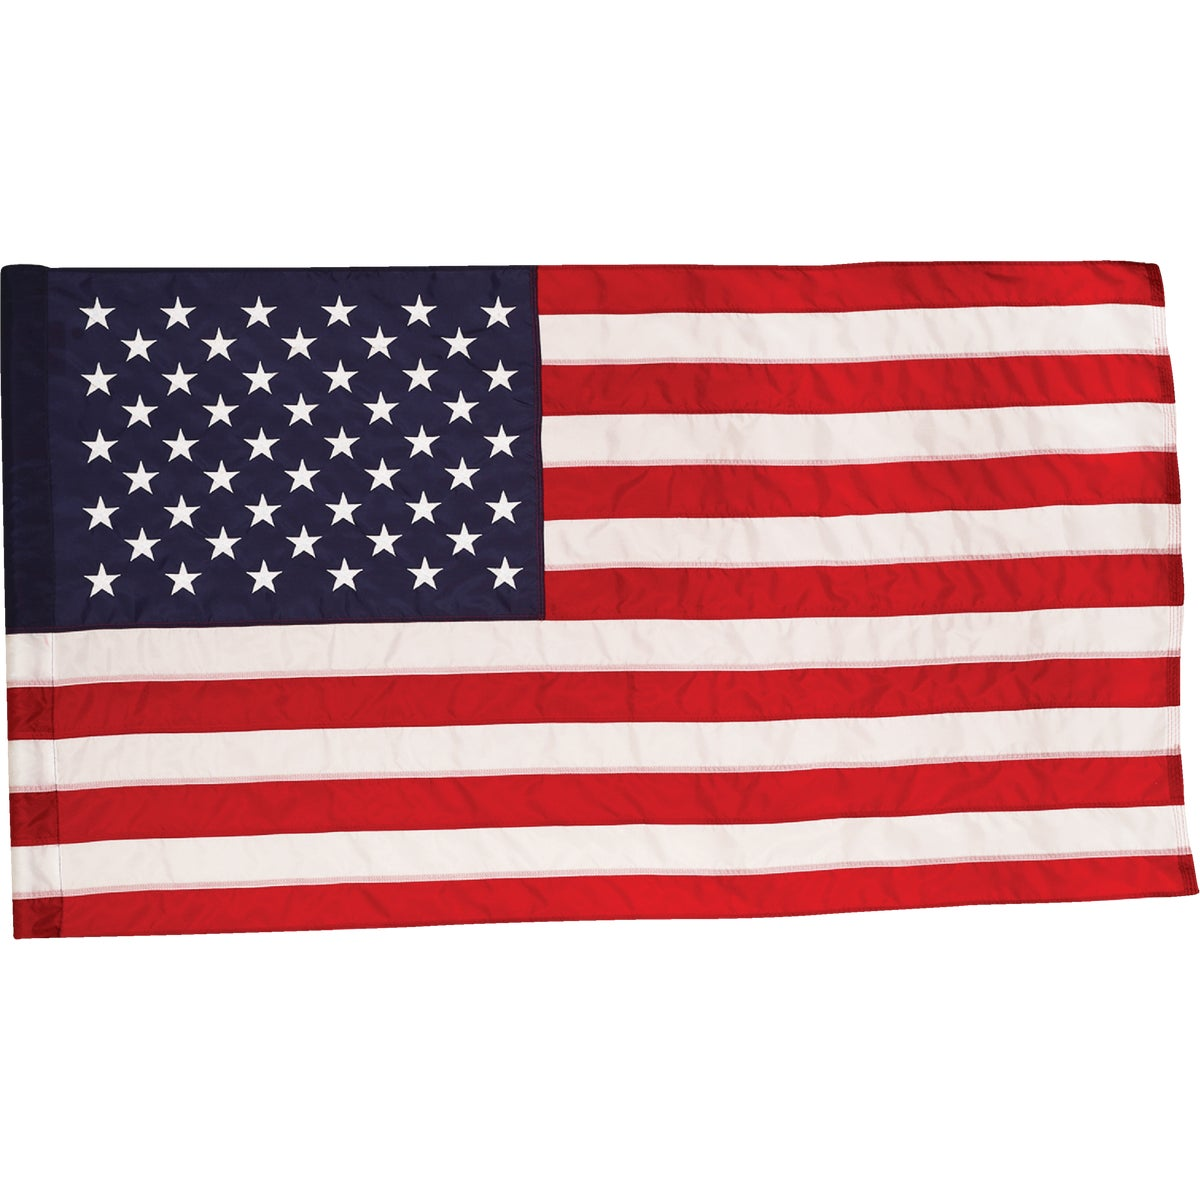 Valley Forge DECORATIVE US FLAG 60650